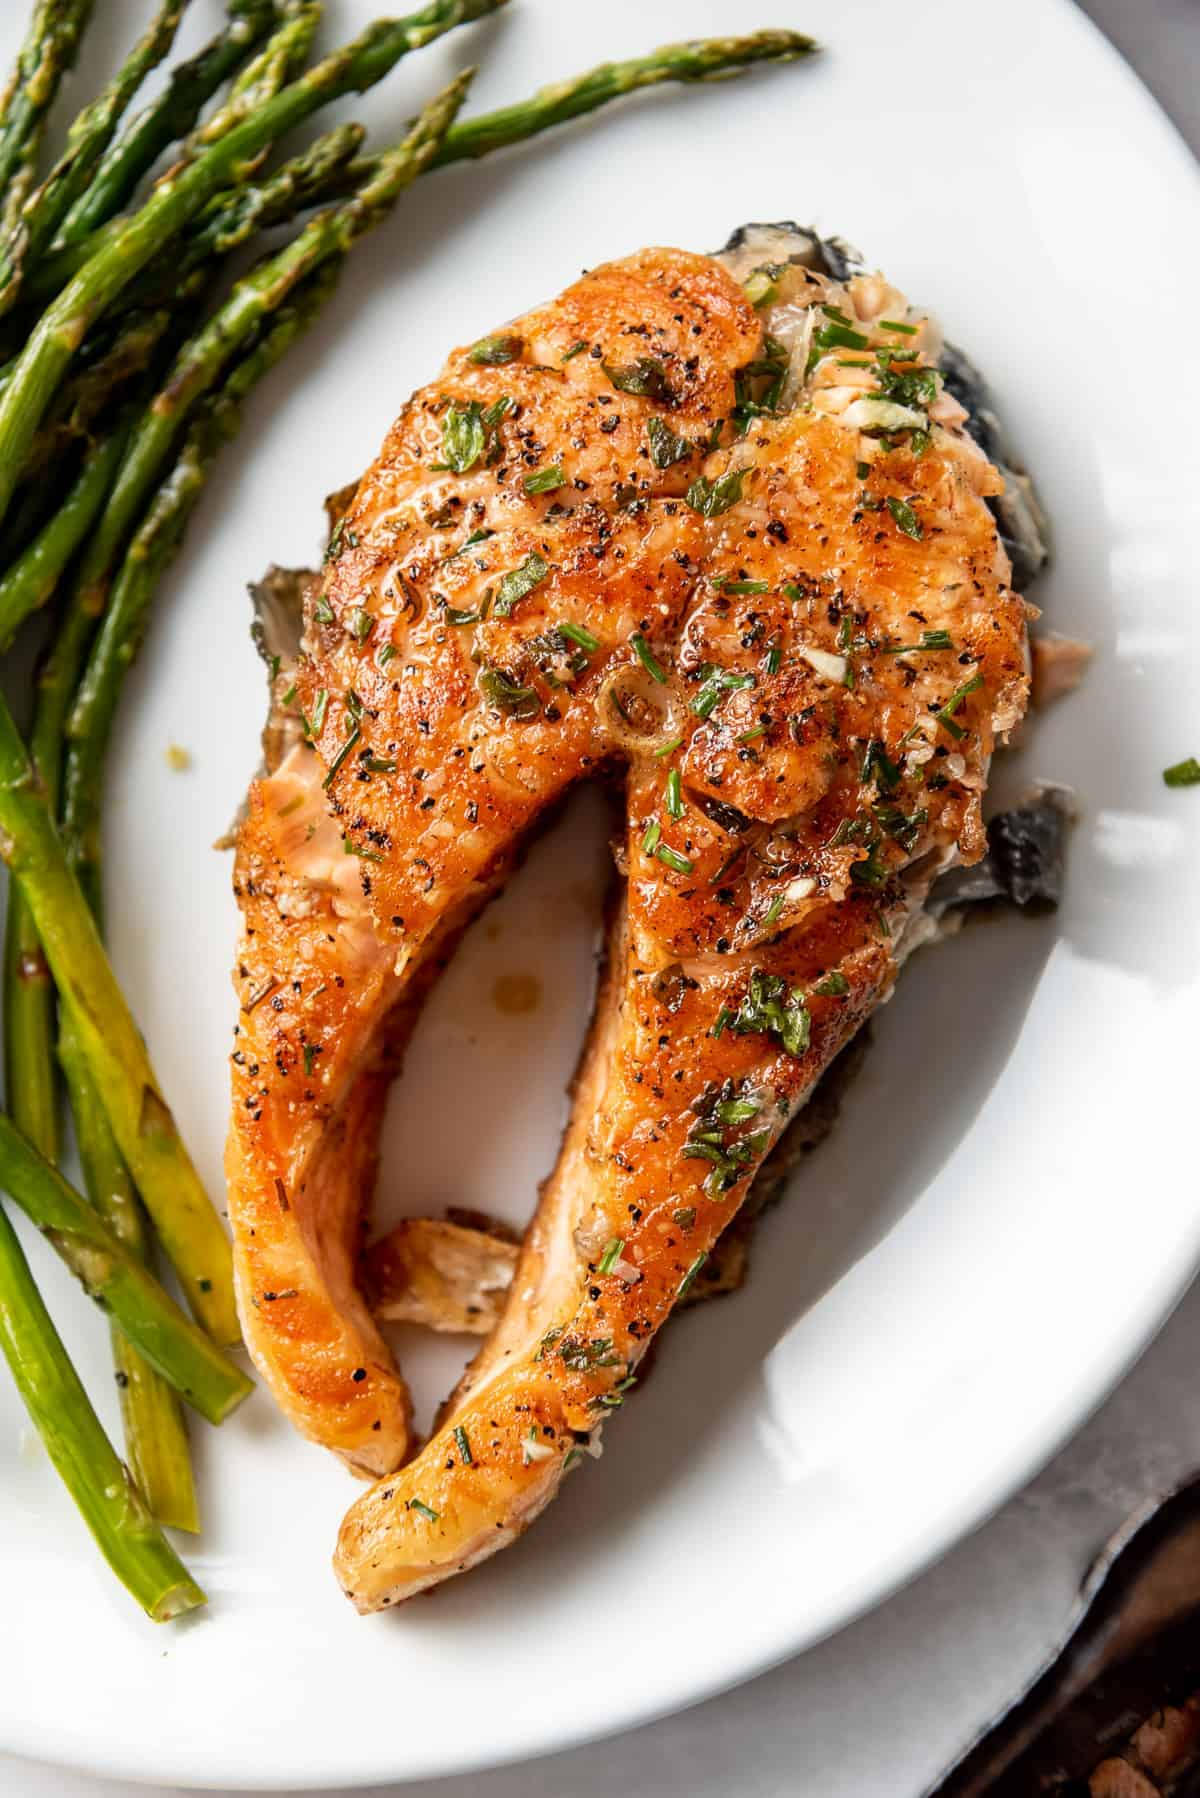 An image of a grilled salmon steak on a plate with asparagus.